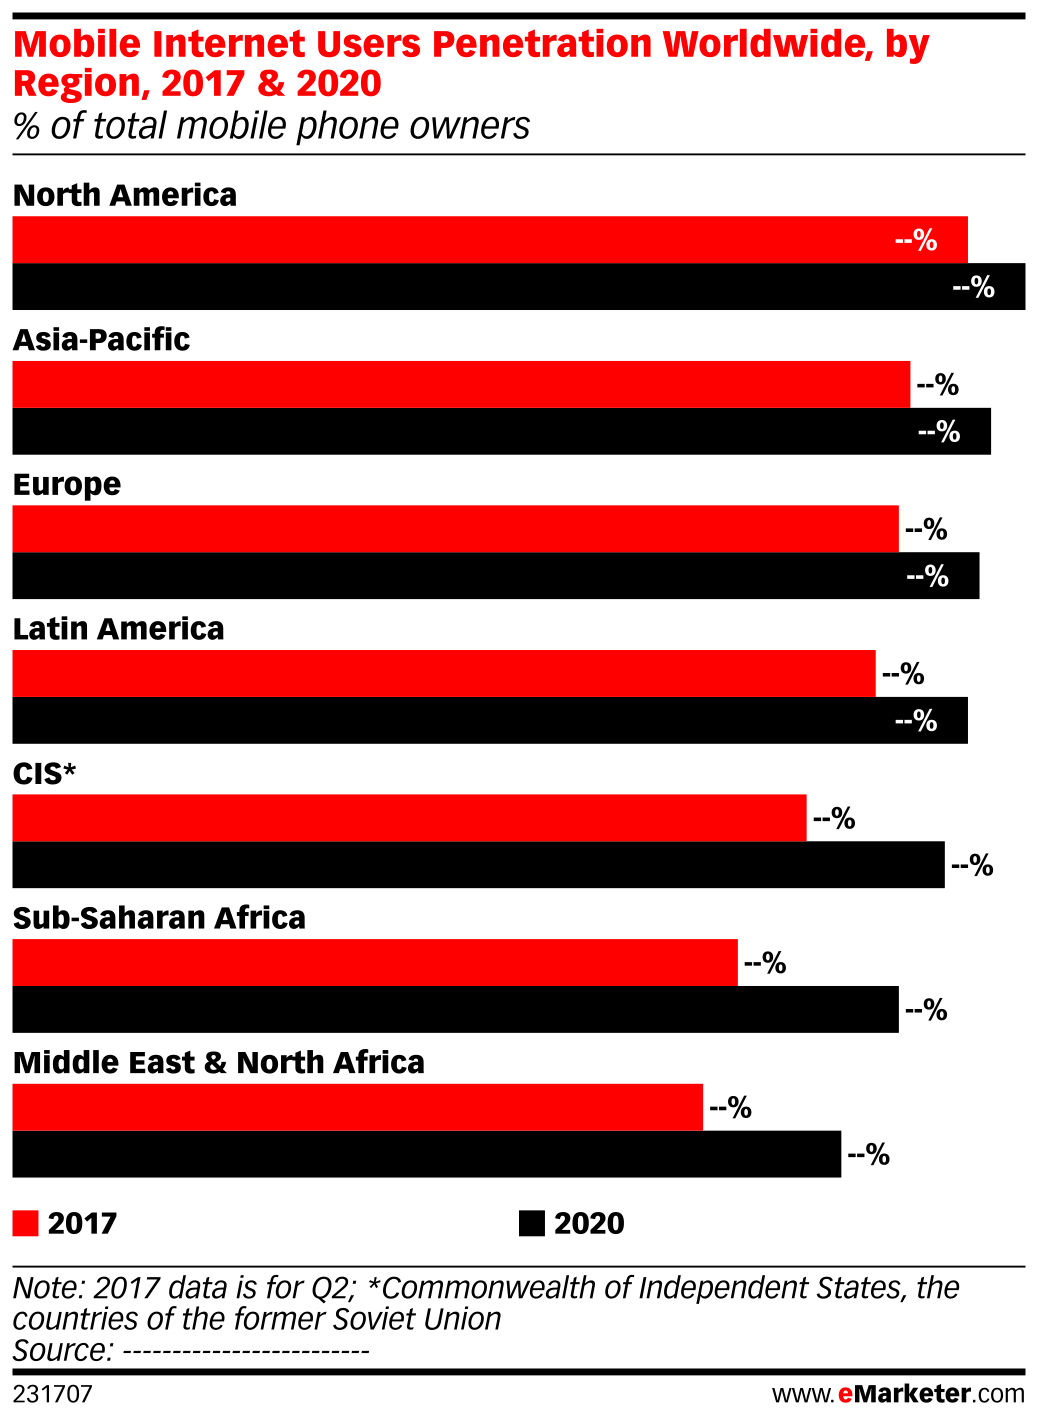 Mobile Internet Users Penetration Worldwide, by Region, 2017 & 2020 (% of total mobile phone owners)